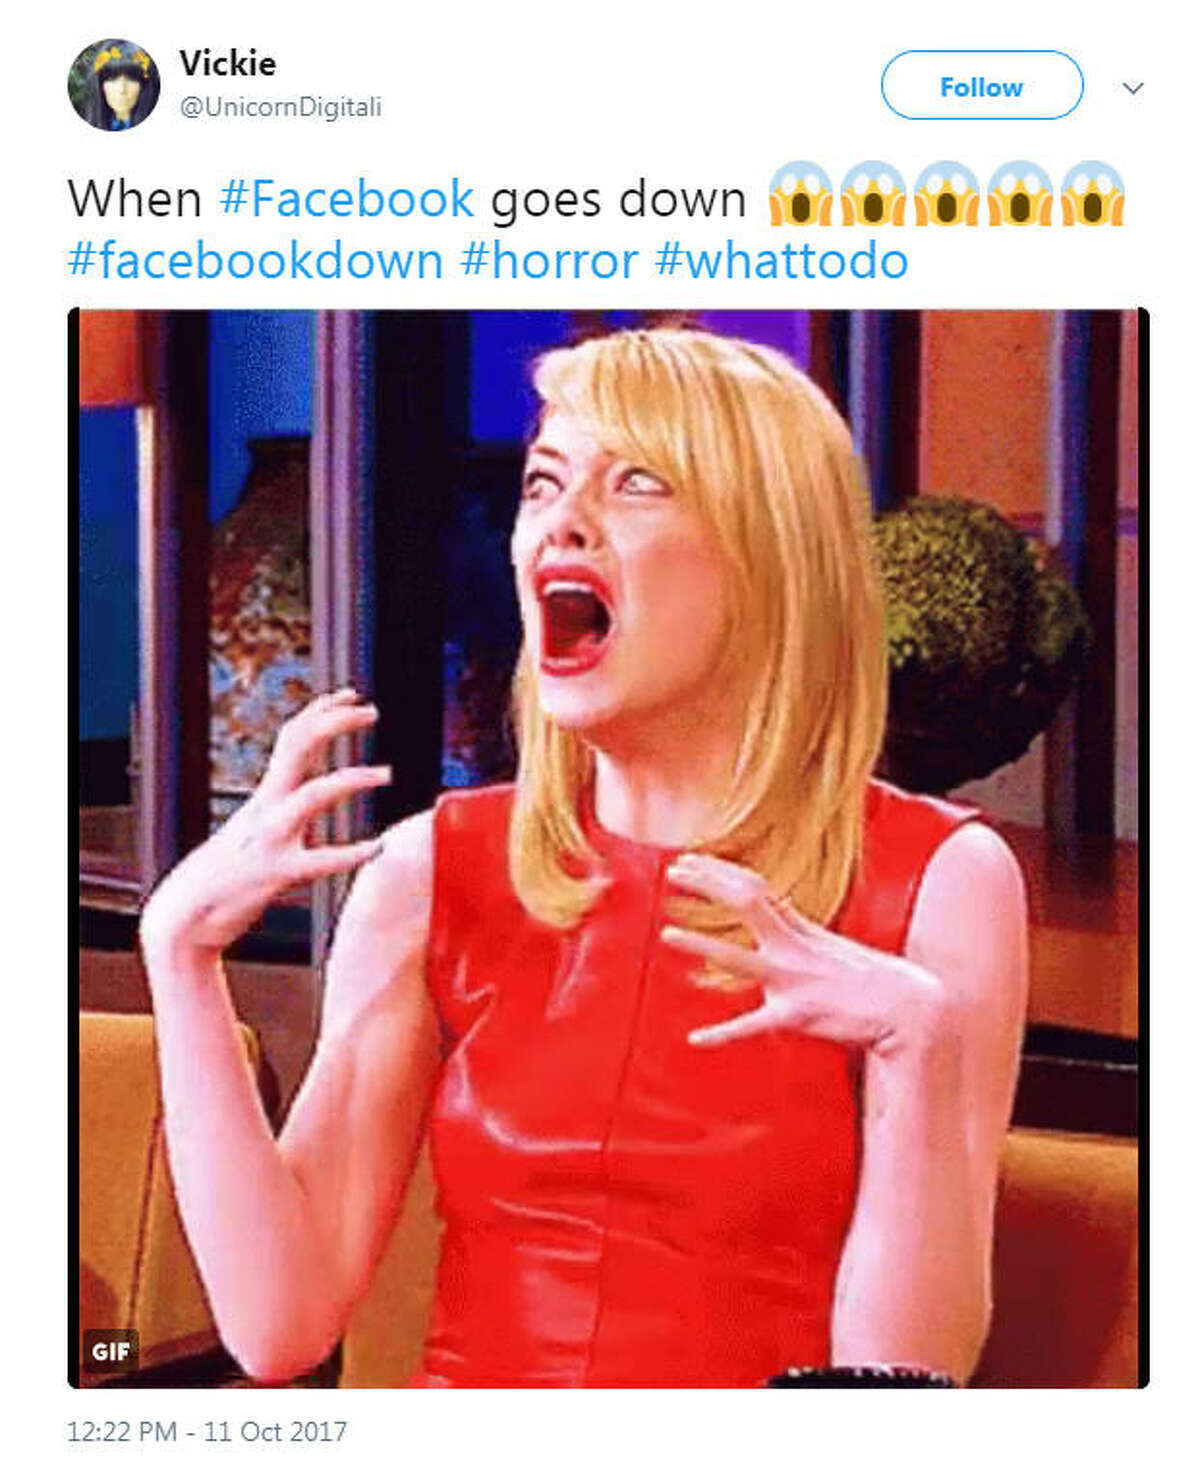 Facebook and Instagram were down on Oct. 11, 2017, causing a Twitter to react with memes.Image source: Twitter